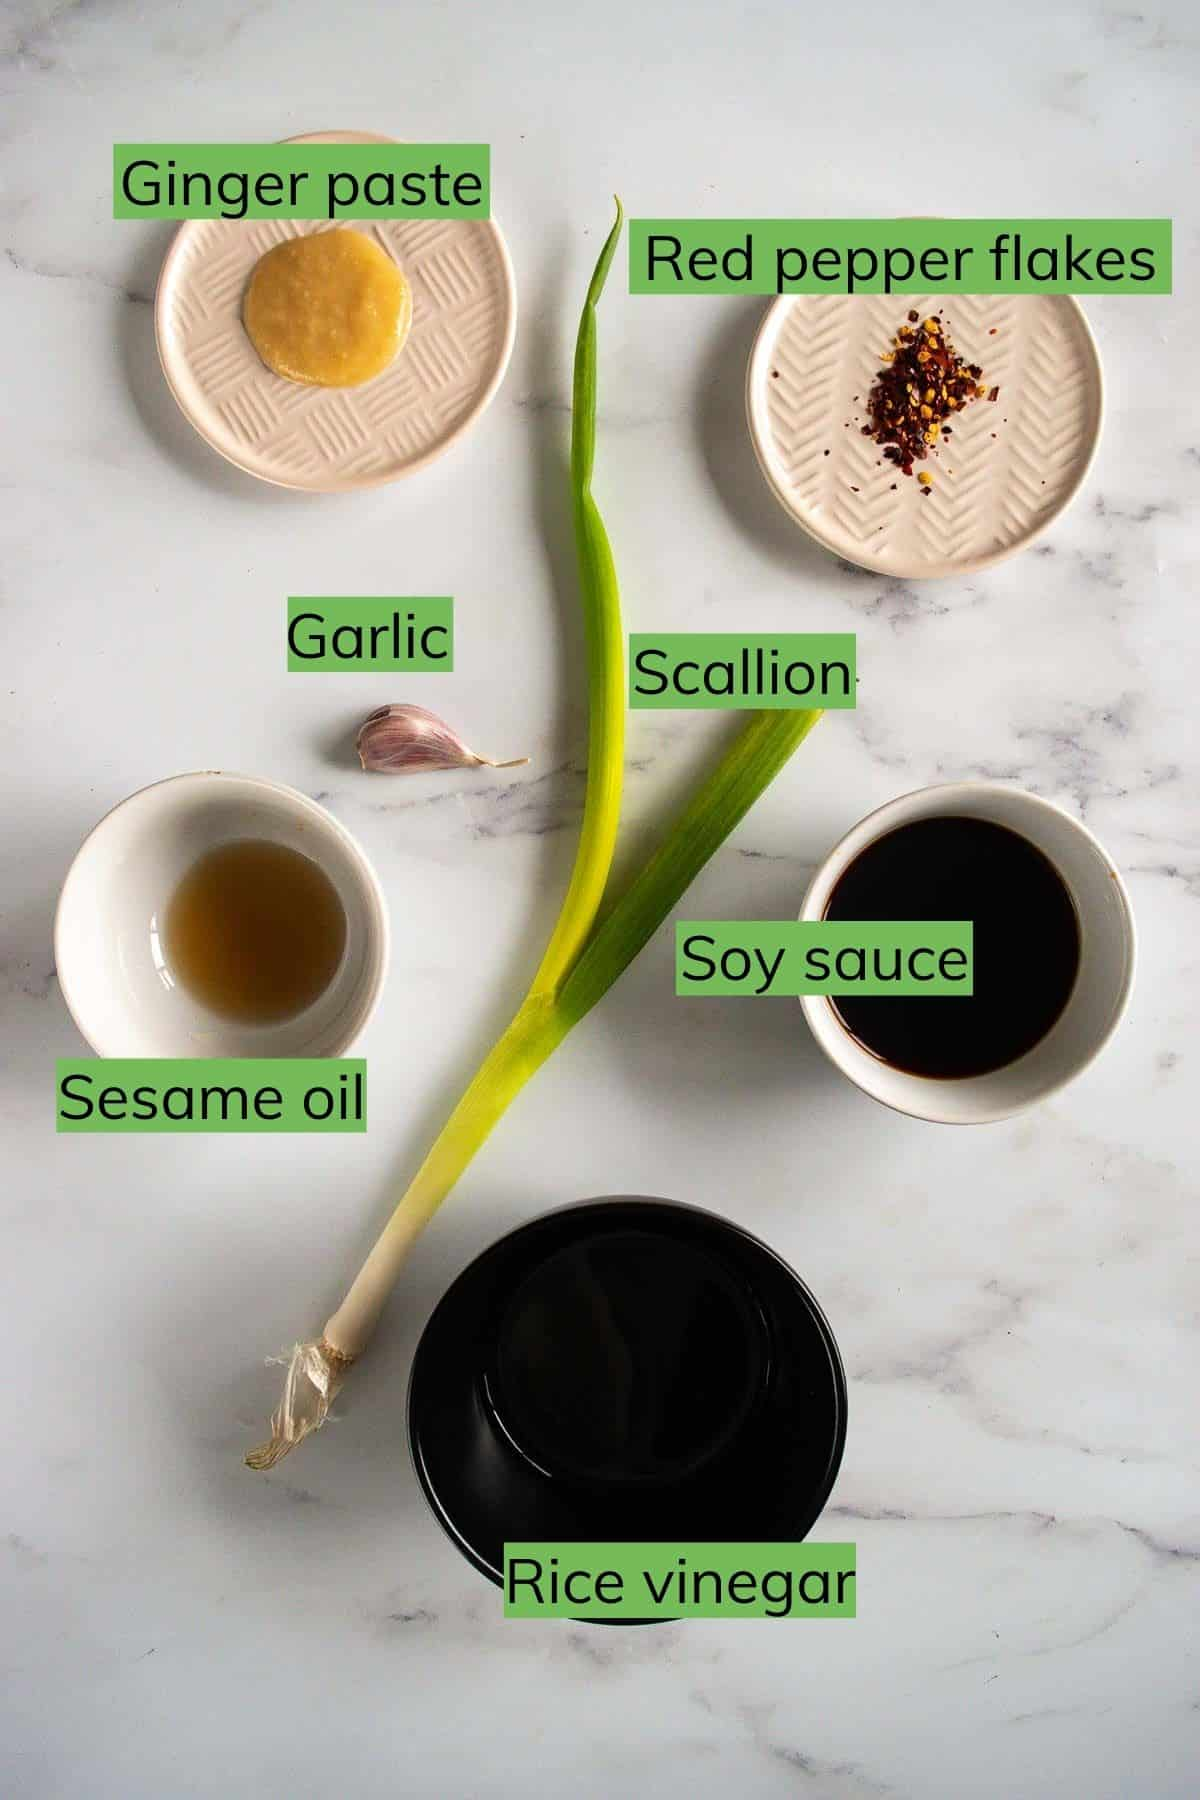 Ingredients required to make gyoza sauce laid out on a table.